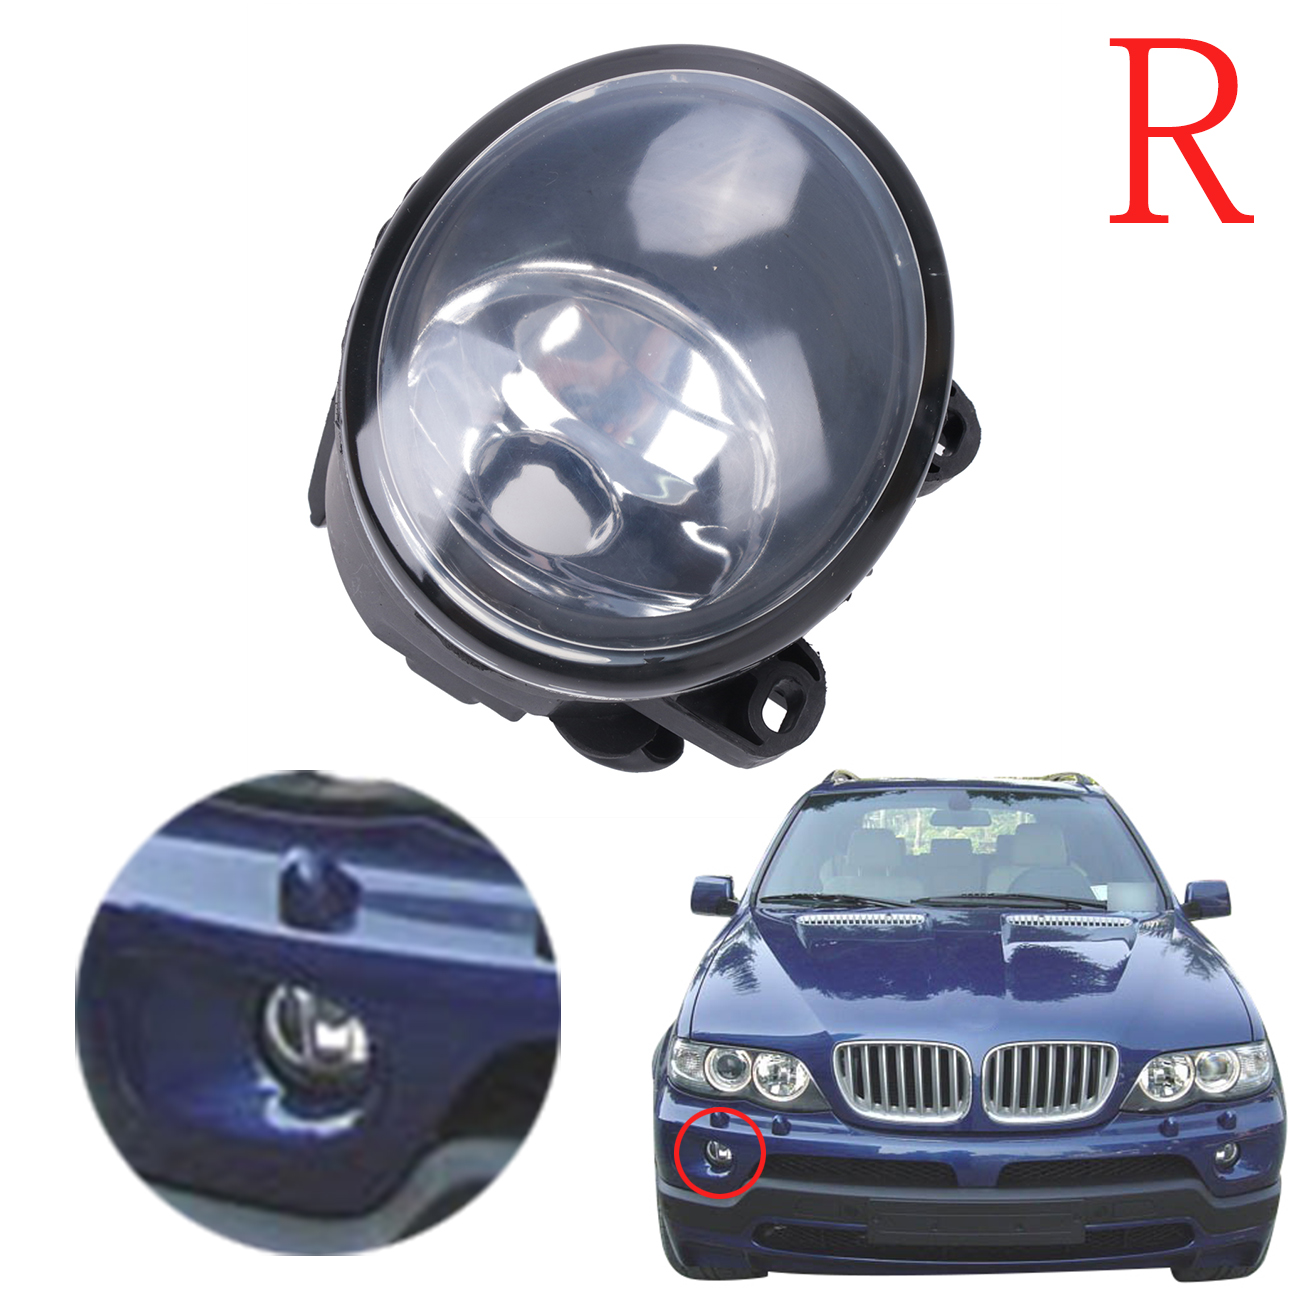 Right Side Front Bumper Driving Fog Light For BMW E53 X5 2003 2004 2005 2006 Clear Lens Foglight Lamp 63176920886 #W084-R for vw golf 5 2004 2005 2006 2007 2008 2009 right side high quality 9 led front fog lamp fog light